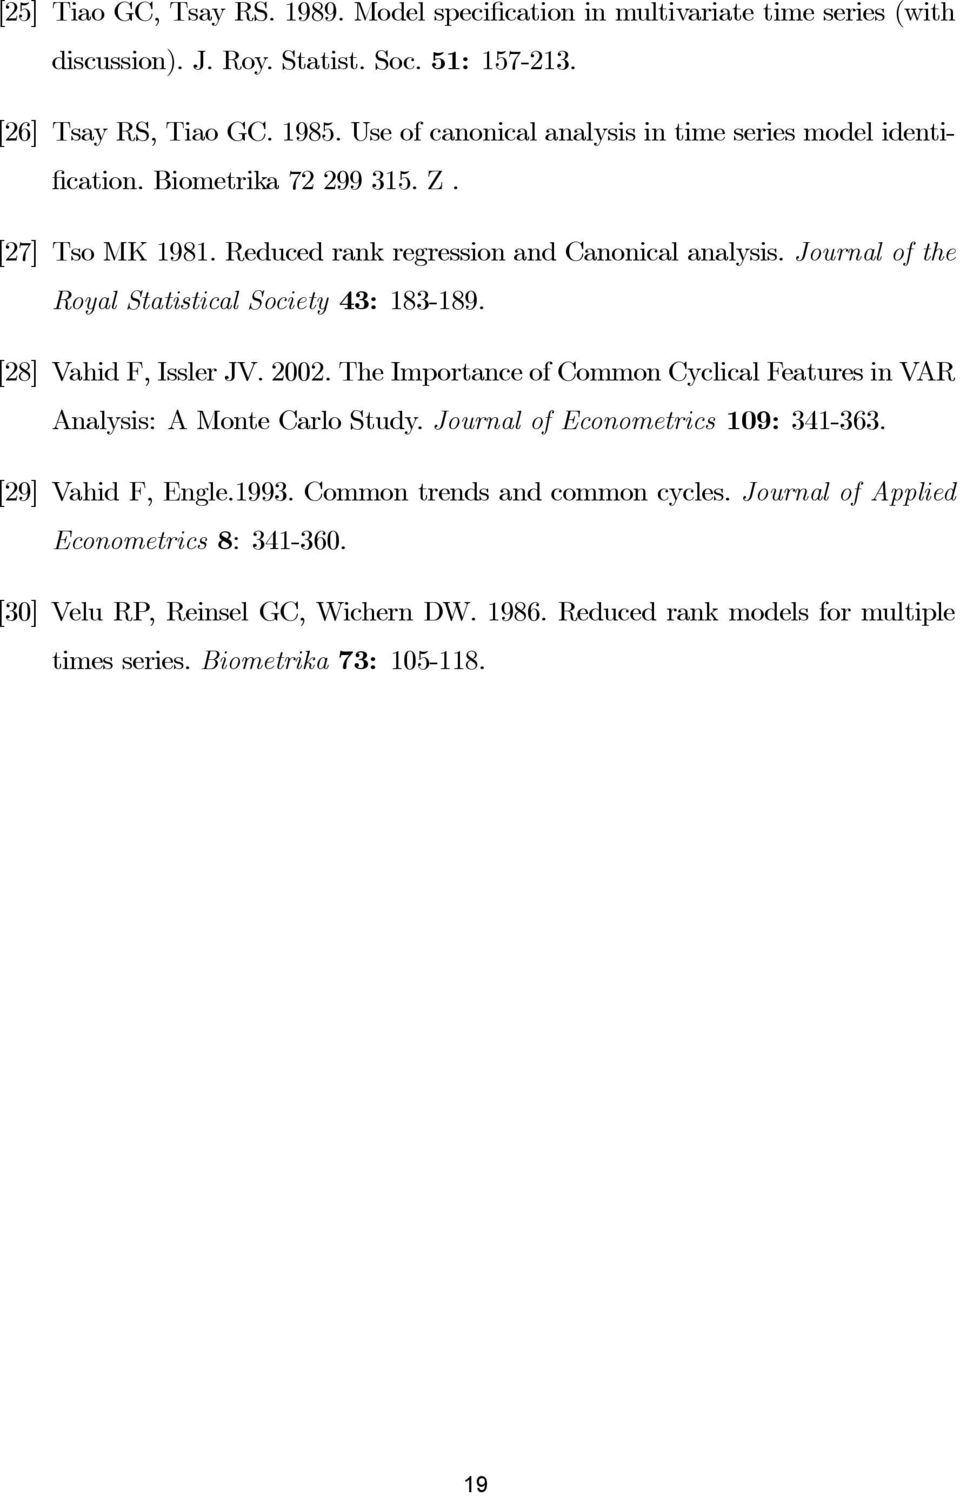 Journal of the Royal Statistical Society 43: 183-189. [28] Vahid F, Issler JV. 2002. The Importance of Common Cyclical Features in VAR Analysis: A Monte Carlo Study.